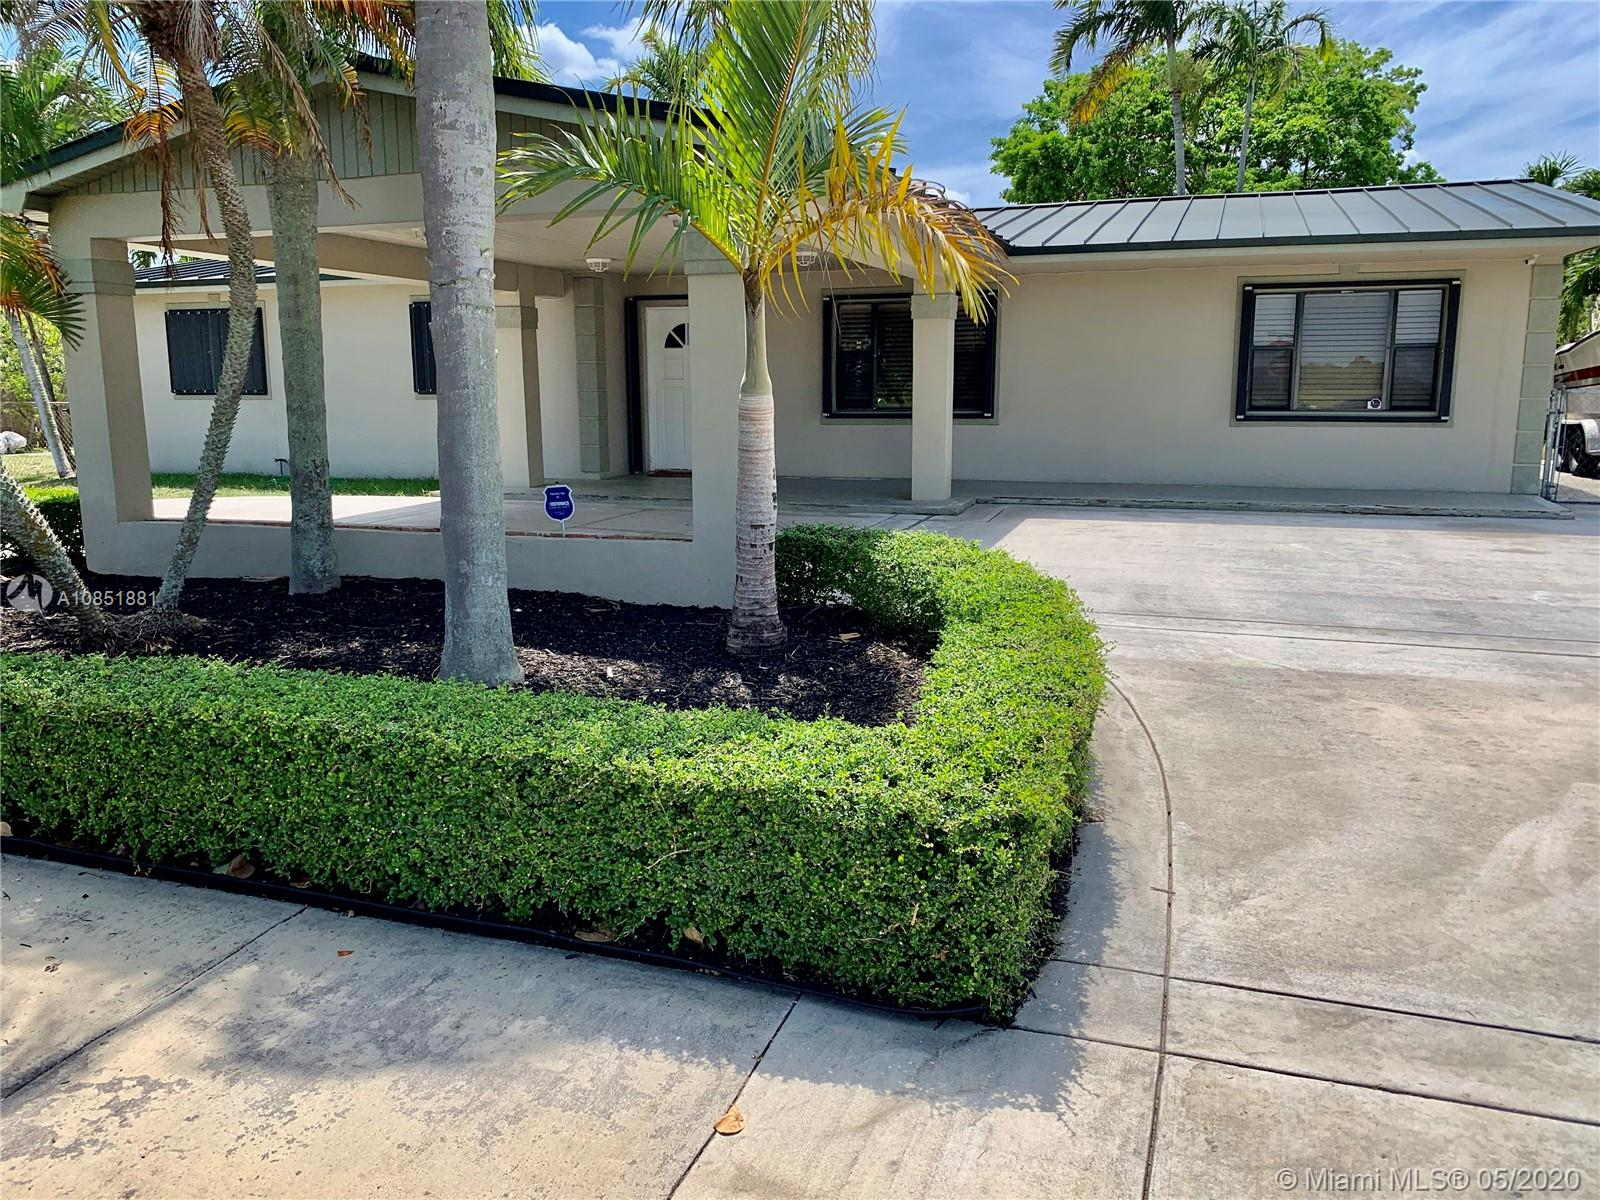 27680 SW 162nd Ave, Homestead, FL 33031 - Homestead, FL real estate listing